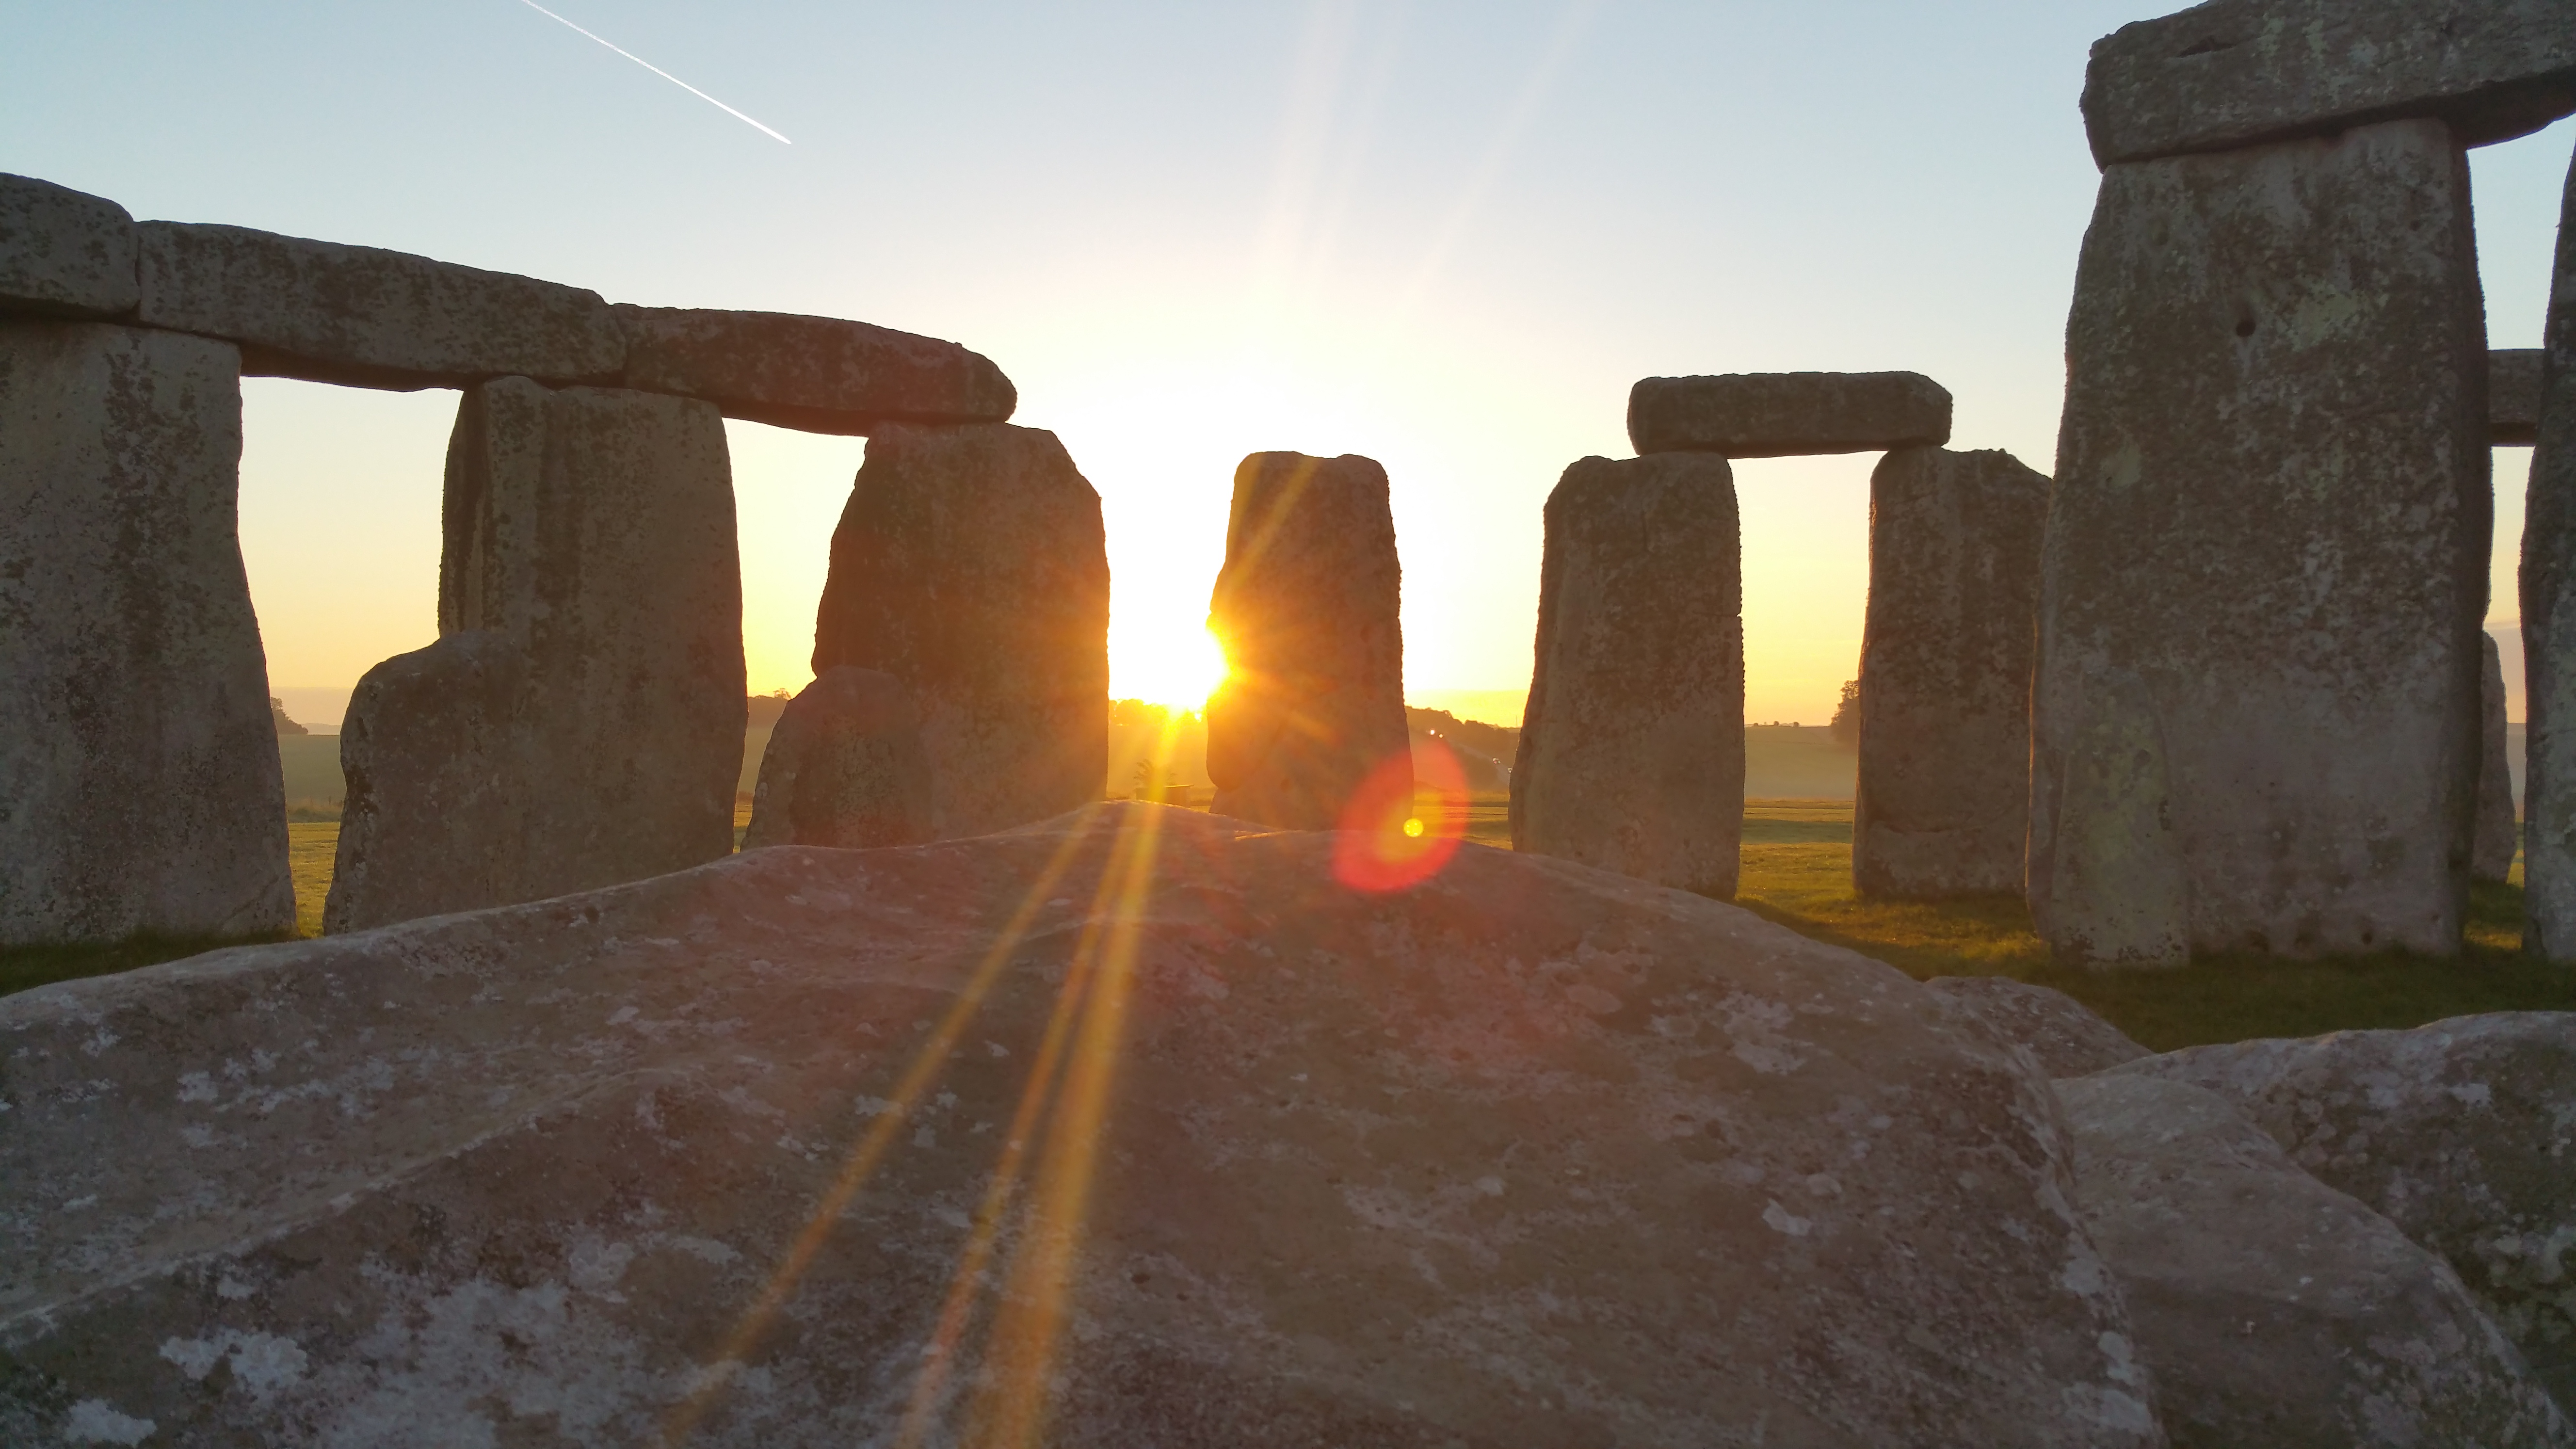 Experience sunrise / sunset from within the inner circle of Stonehenge.  Magical!